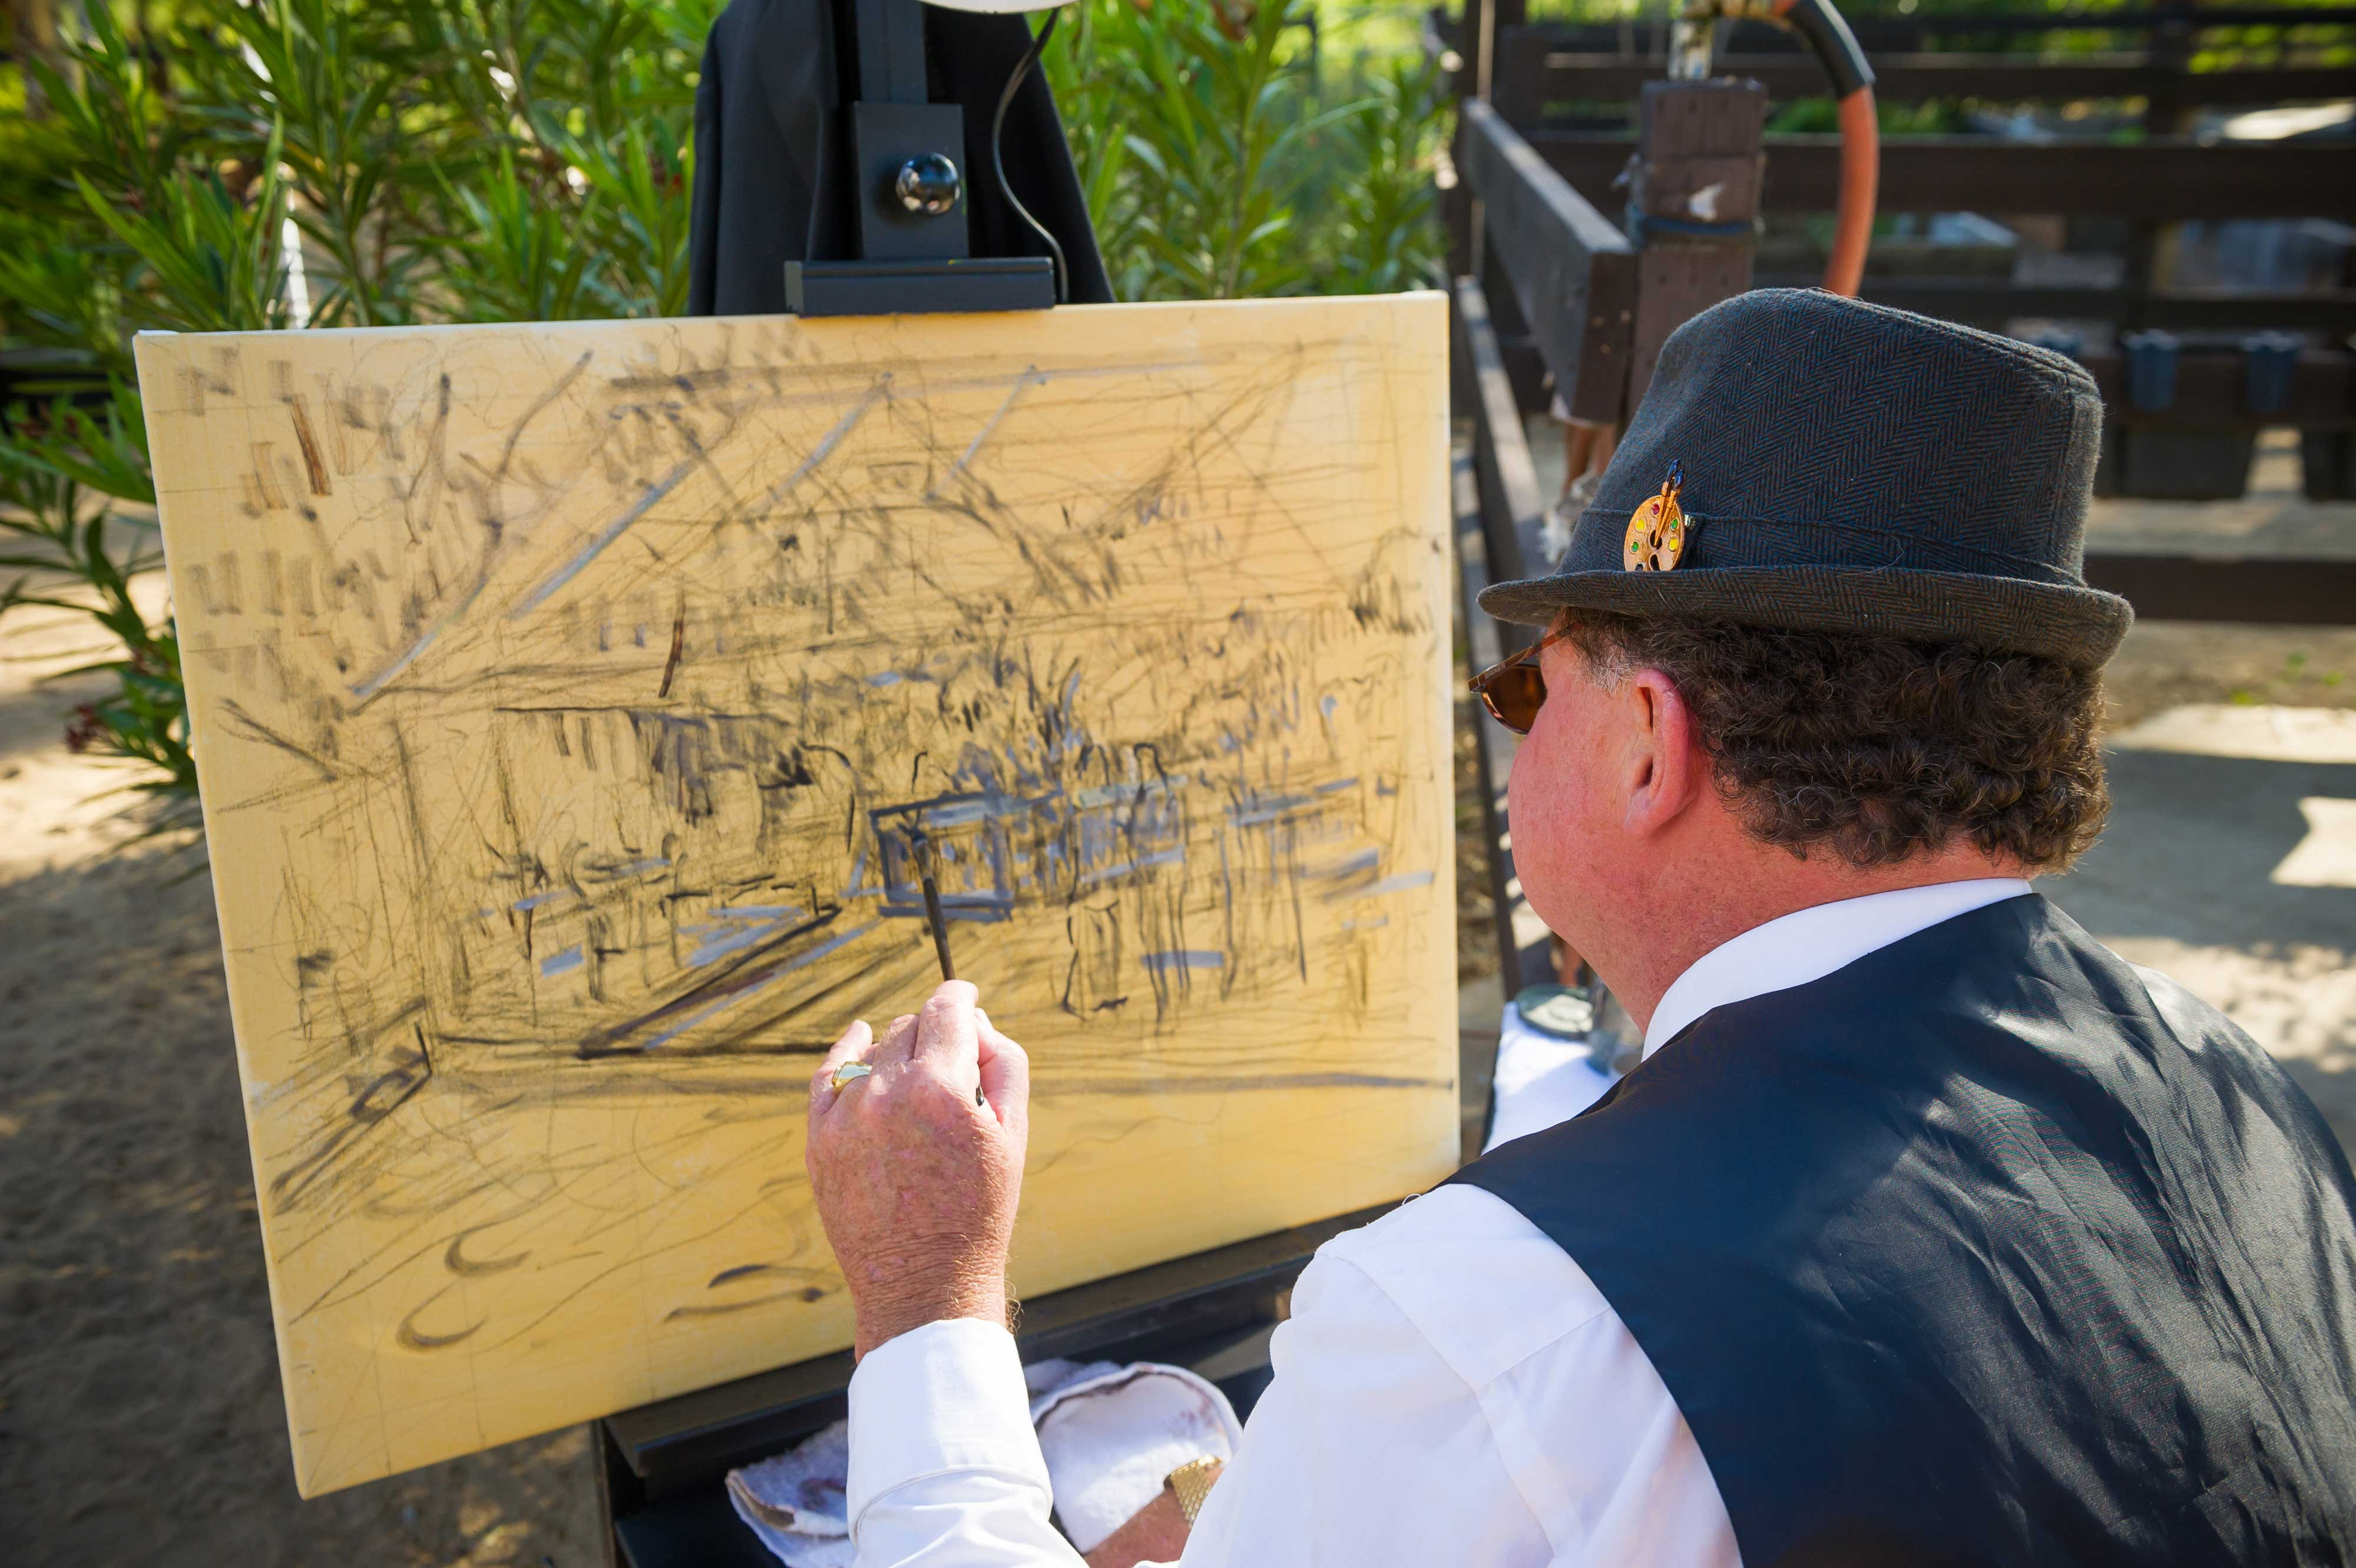 Sketch from live event painter artist Details Defined party at Painted Sky Ranch